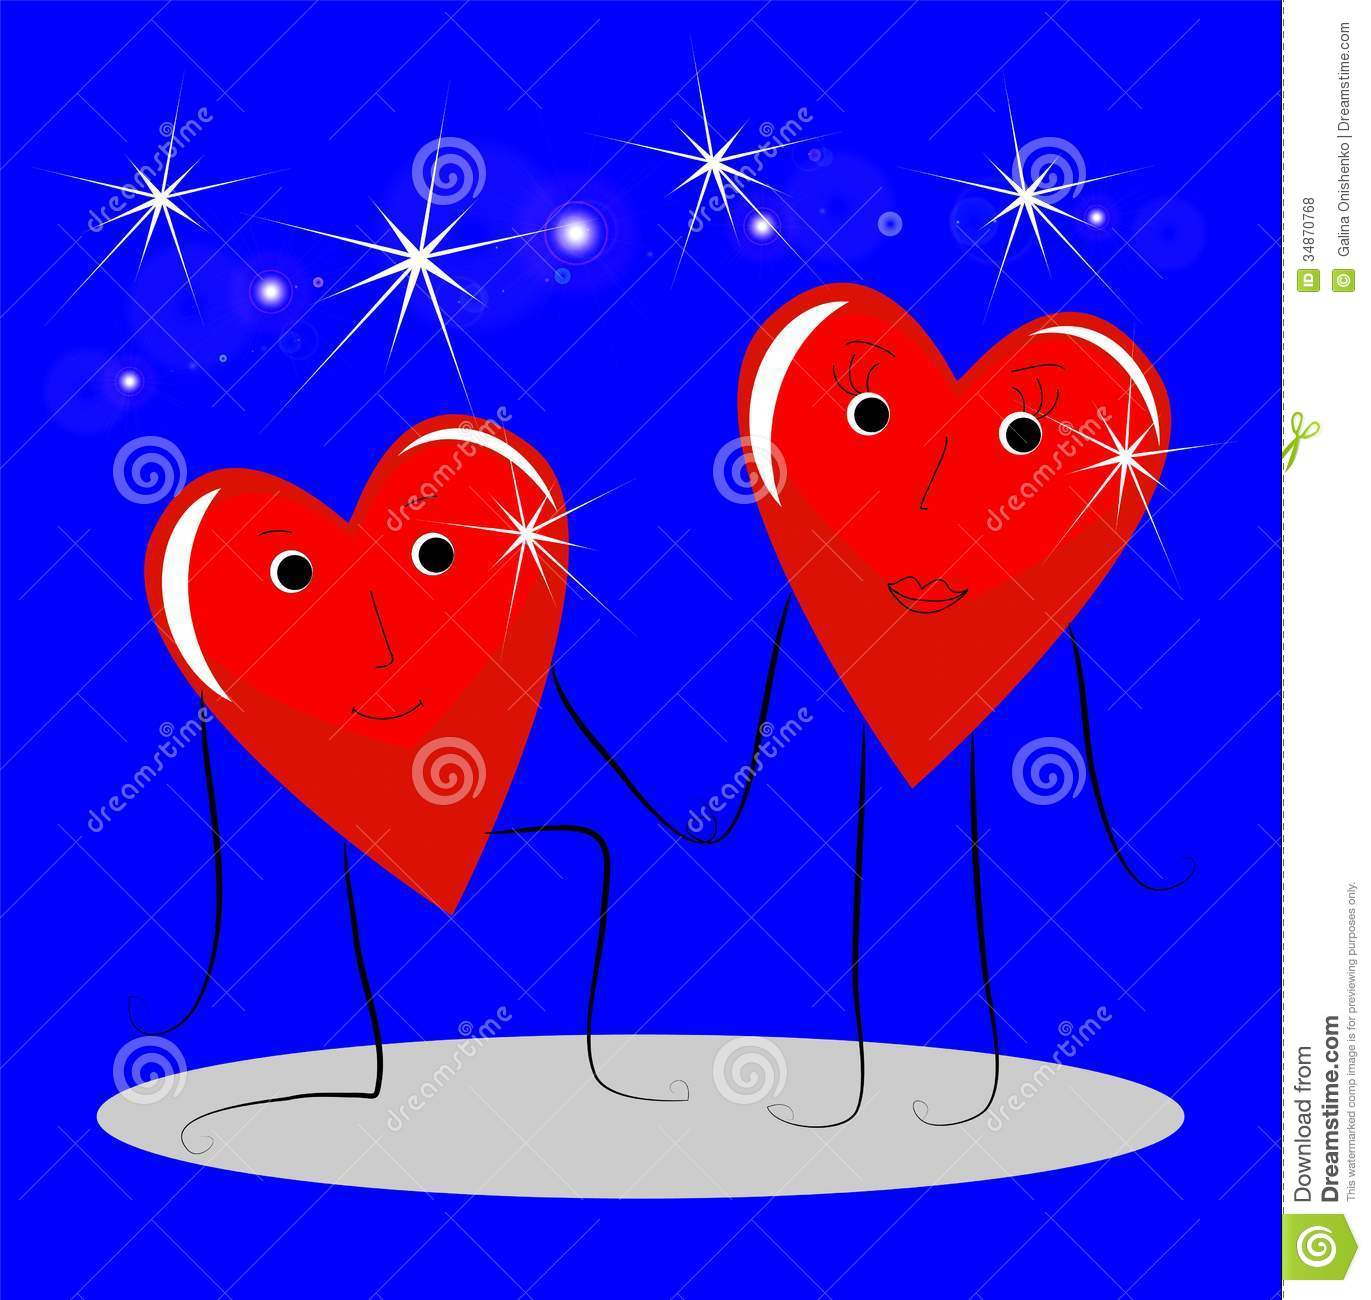 Falling in love clipart hearts svg black and white download Two Bright Red Falling In Love Of Heart Royalty Free Stock Photos ... svg black and white download